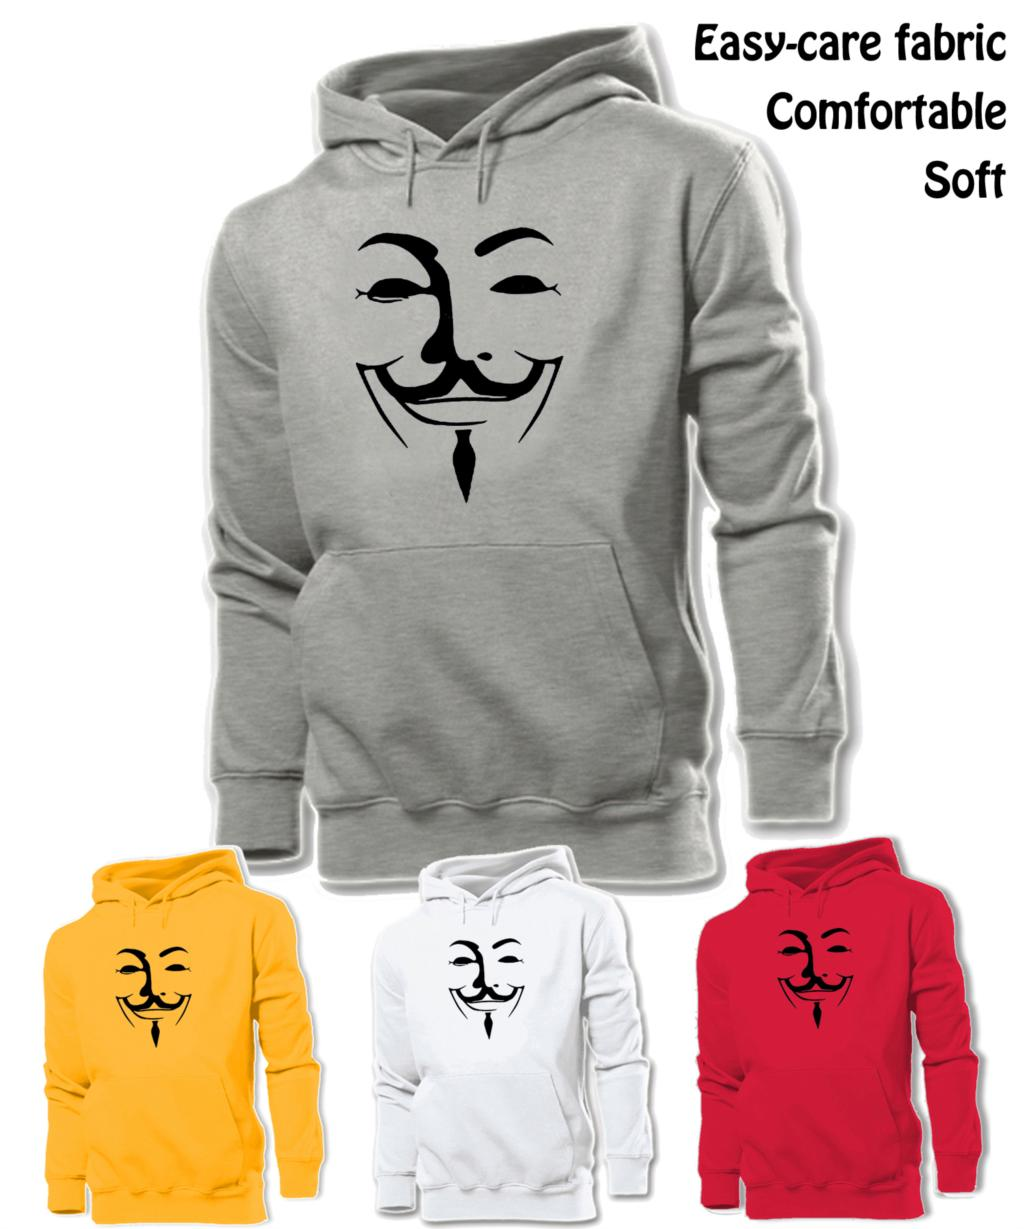 245-BK Anonymous V For Vendetta Disobey Obey Fashion Black Graphic Hoodie Men's Boy's Women's Girl's Sweatshirt Hoodie Tops(China (Mainland))